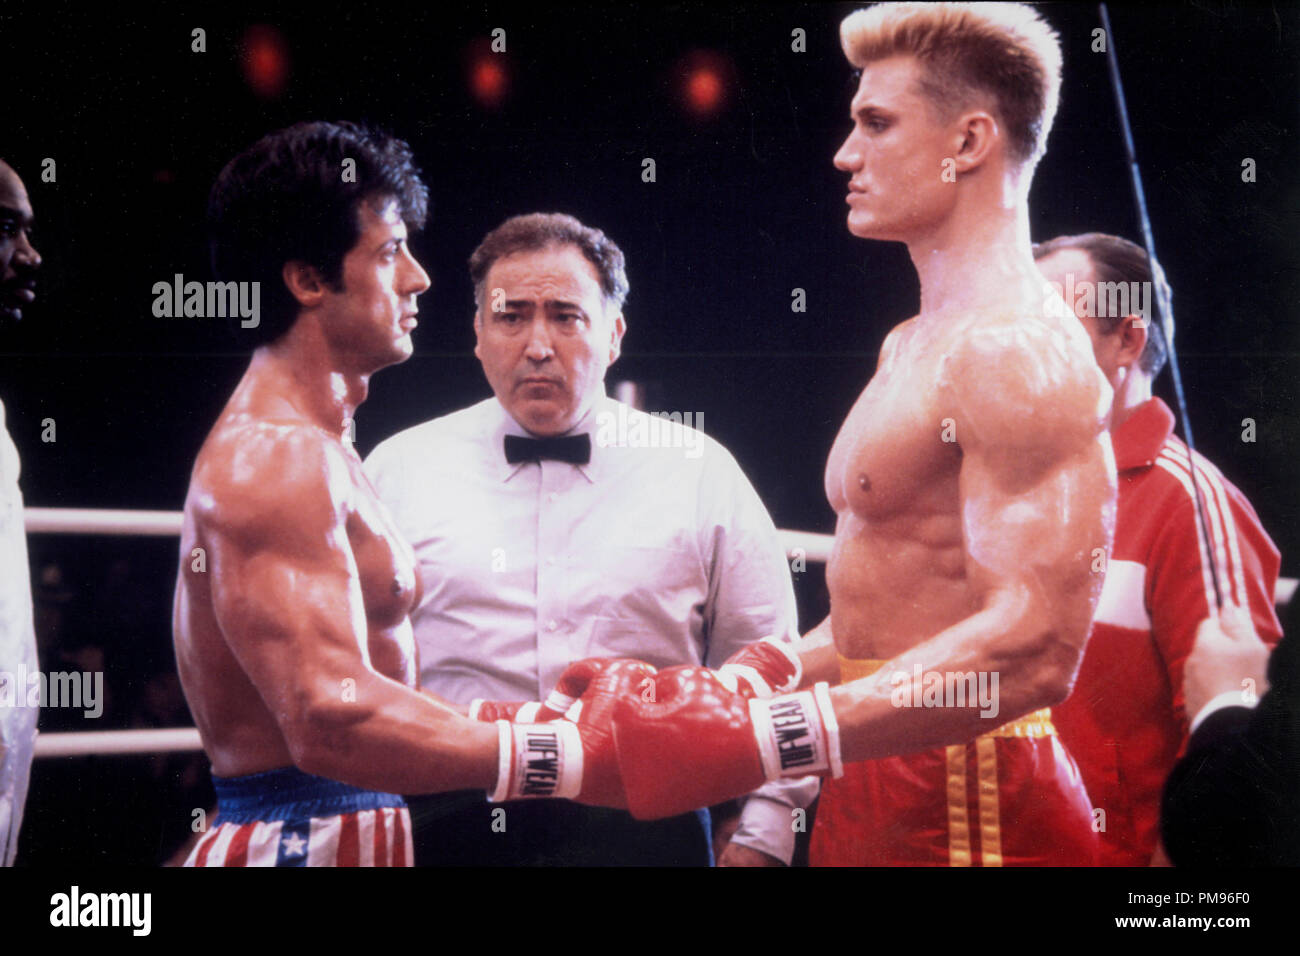 """Studio Publicity Still from """"Rocky IV"""" Sylvester Stallone, Dolph Lundgren © 1985 MGM/UA  All Rights Reserved   File Reference # 31703100THA  For Editorial Use Only Stock Photo"""